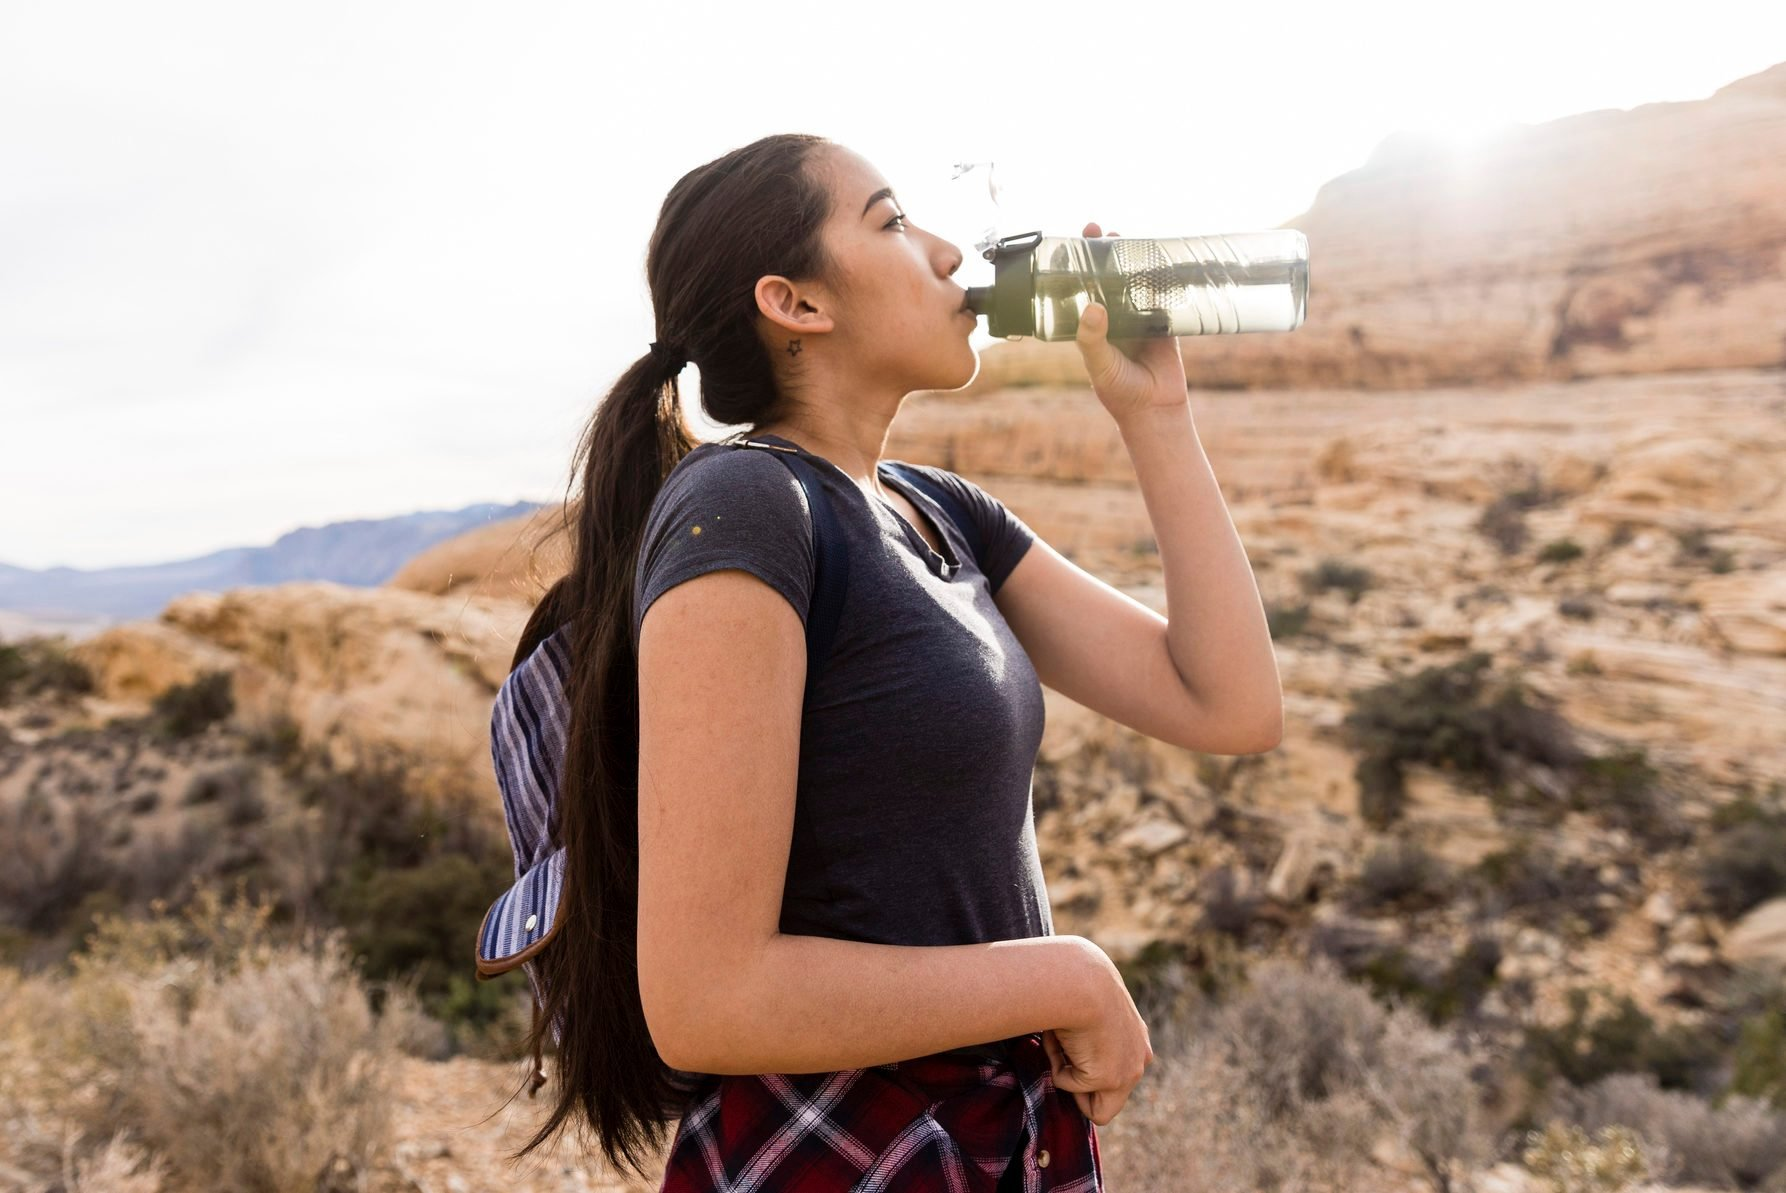 Woman with backpack drinking water while standing by rock formation against clear sky